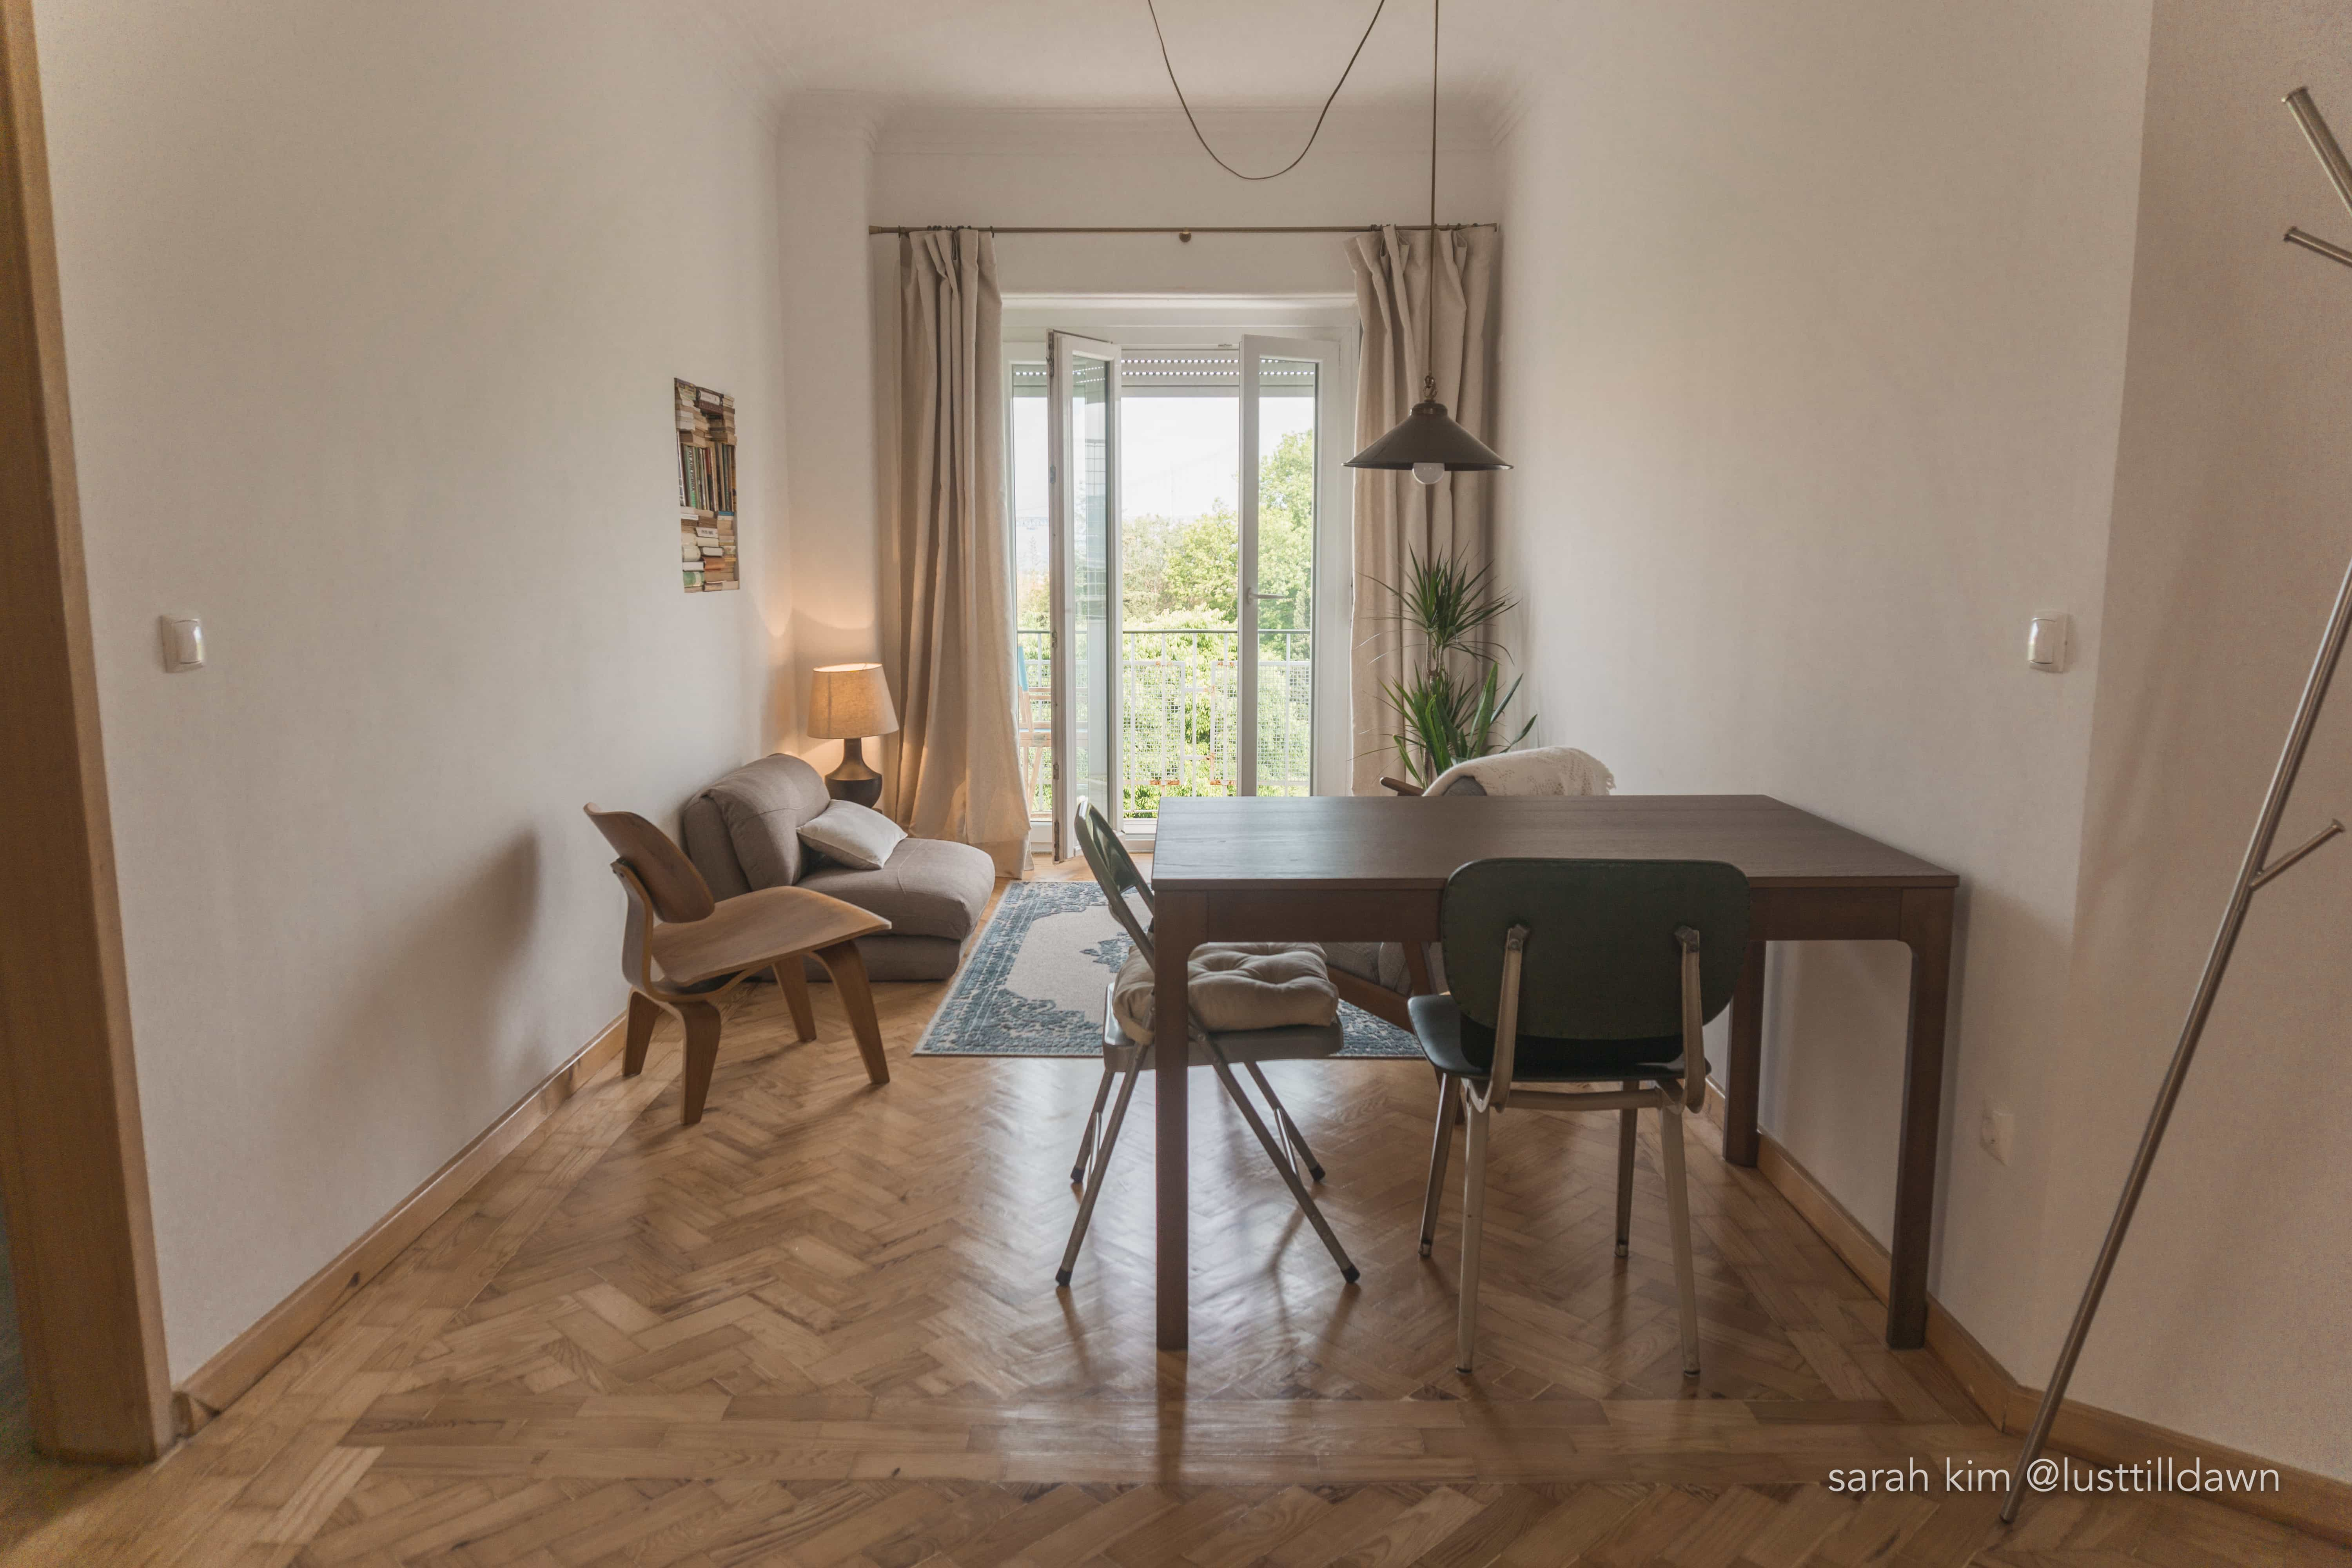 inside view of best airbnb in lisbon